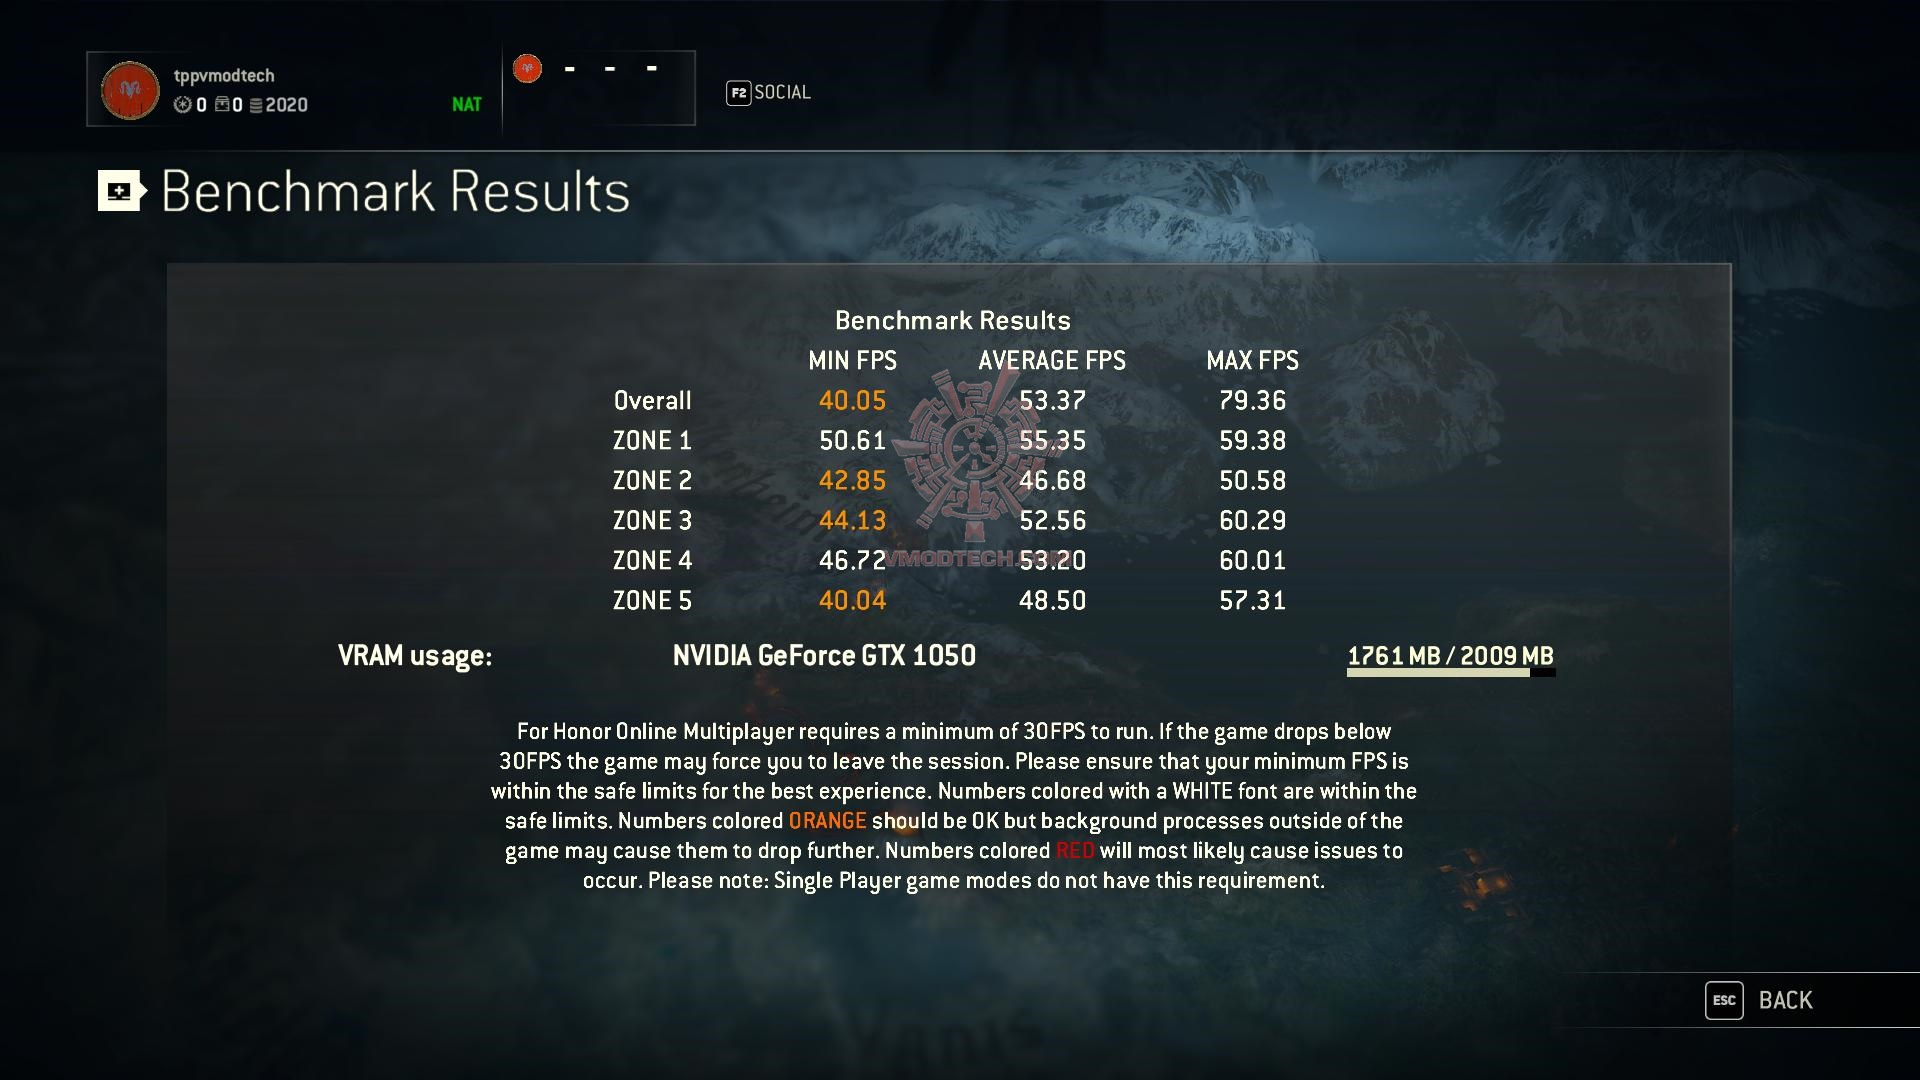 forhonor-2017-05-10-21-51-36-02